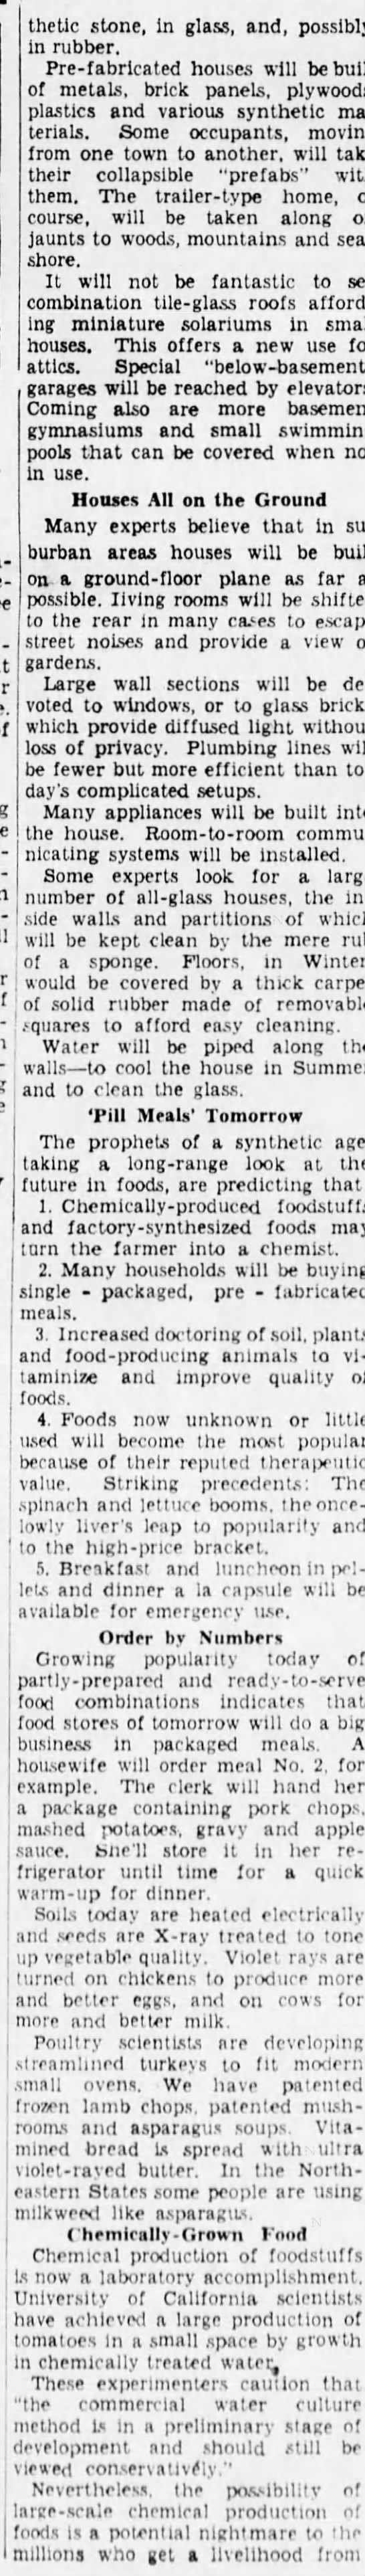 3863e Old Print Article: What Life Will Be Like In 1963, Brooklyn Daily Eagle (1938)